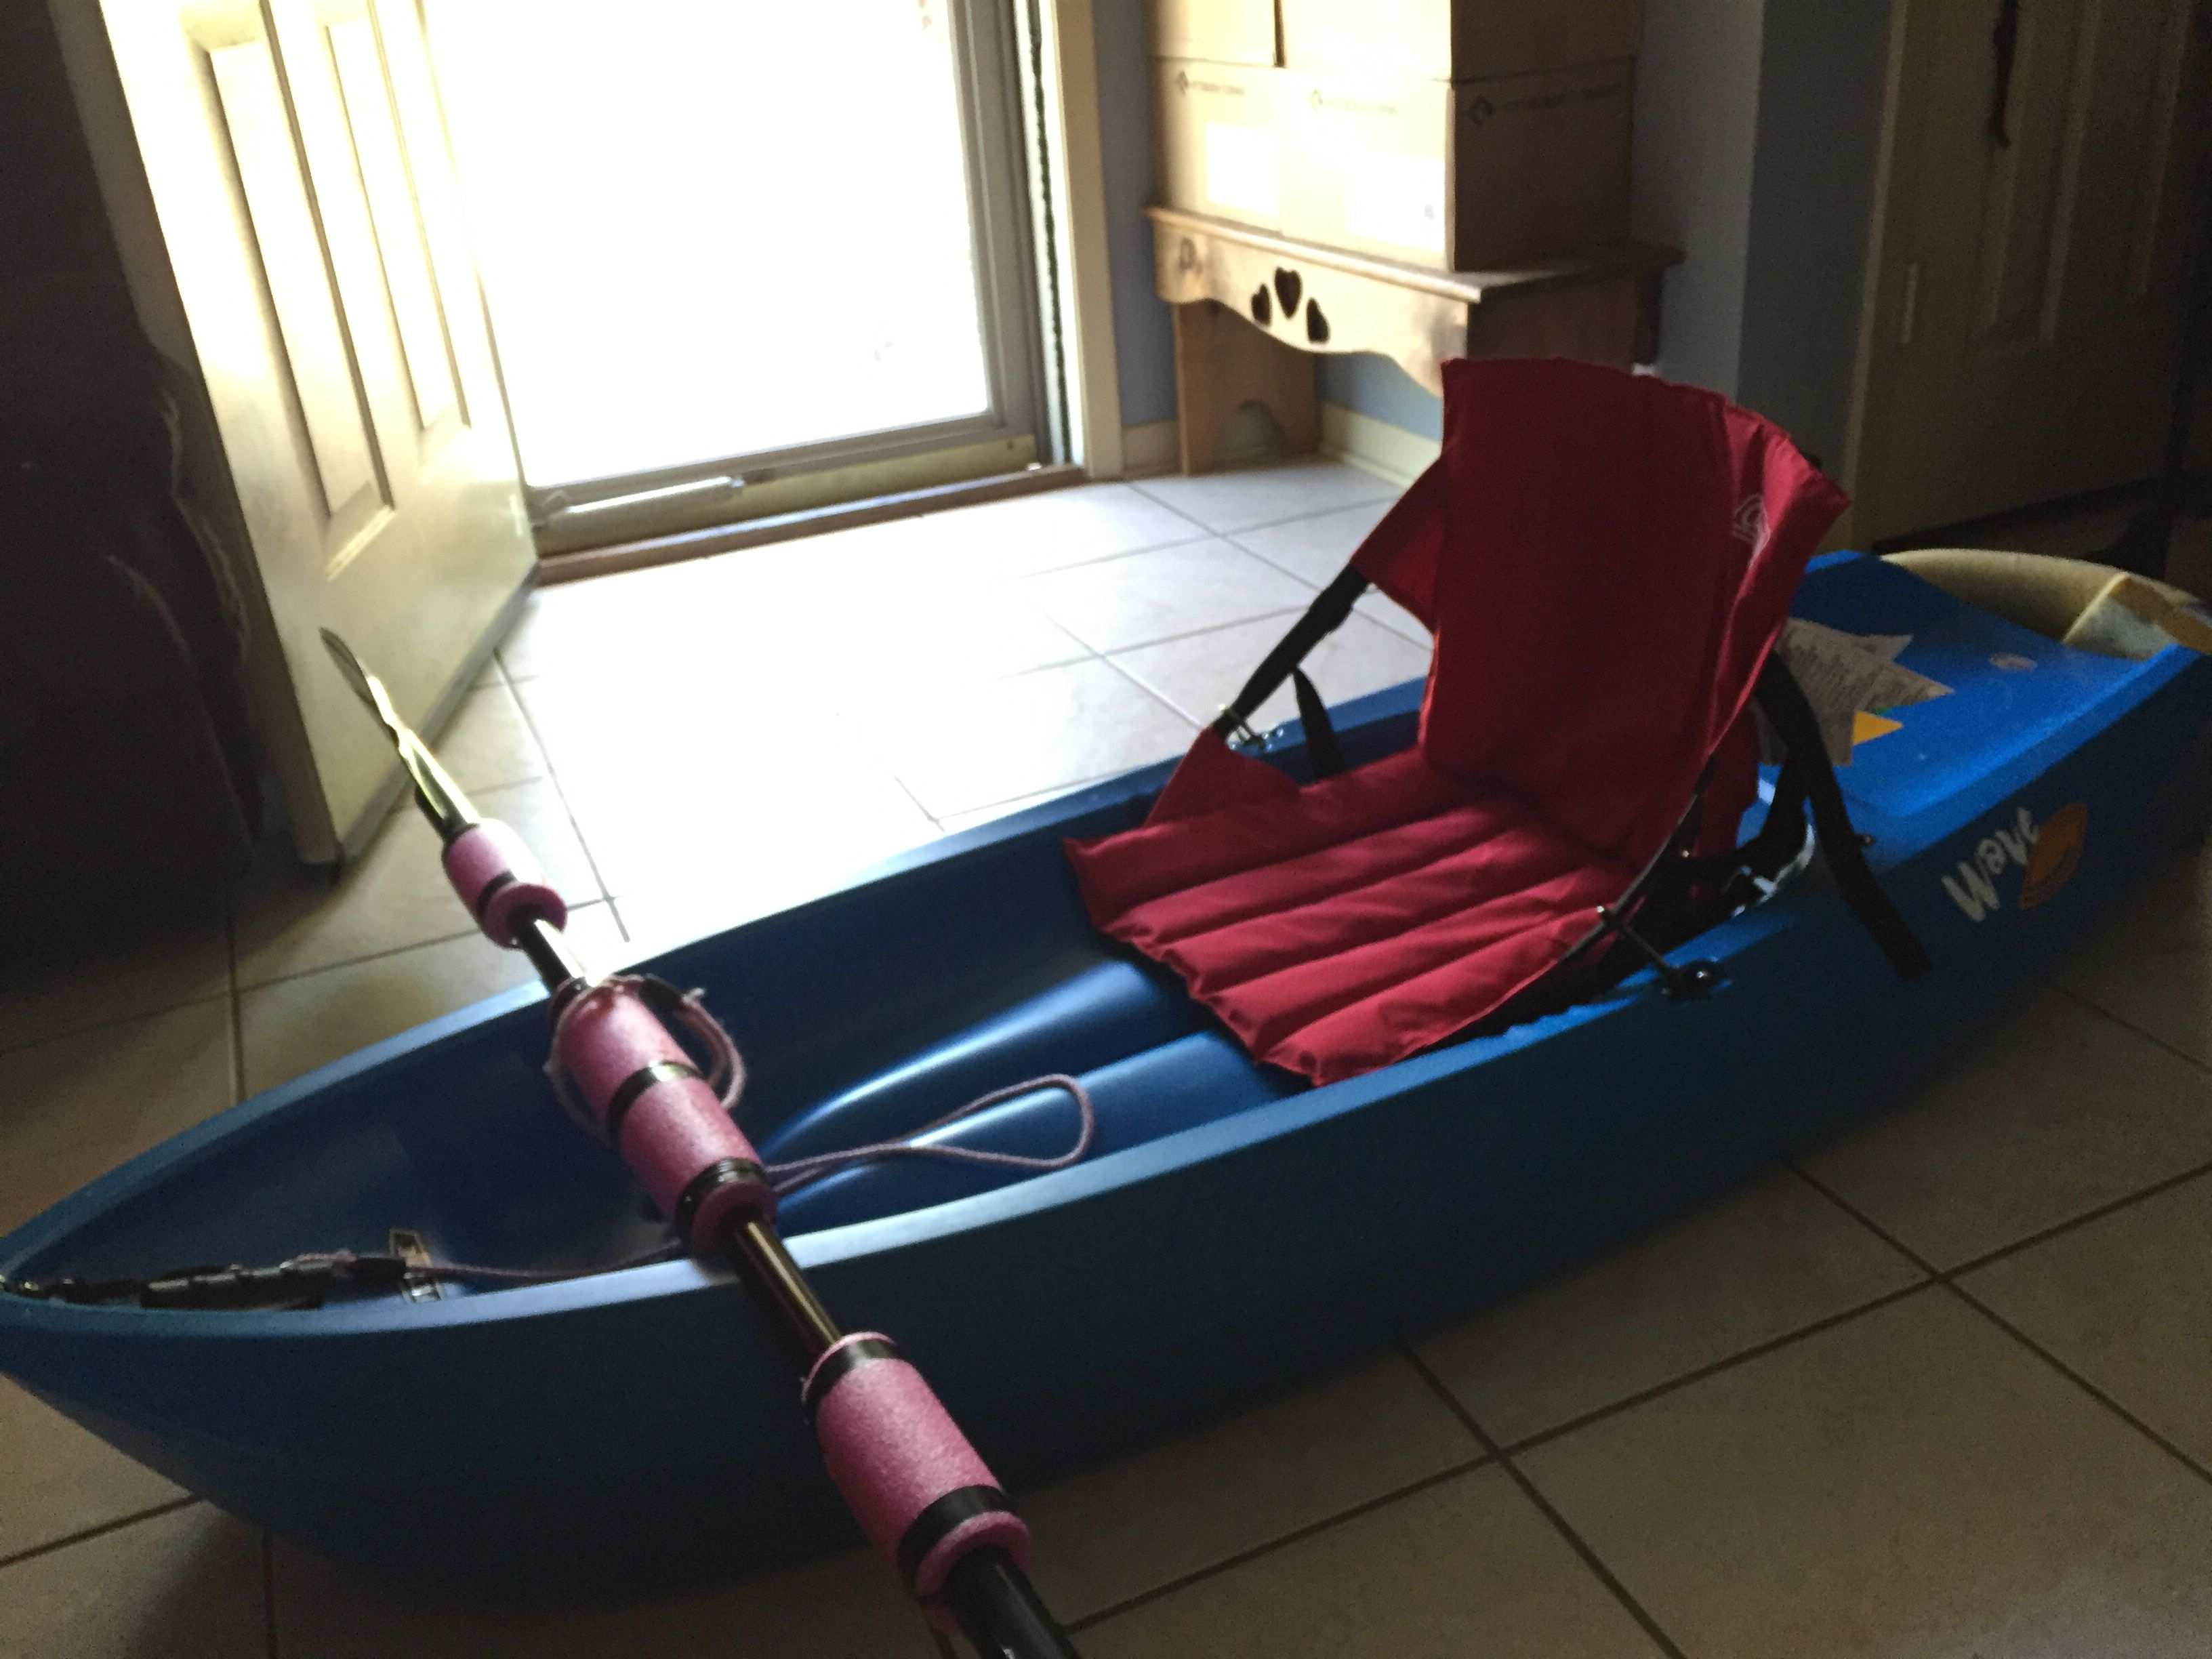 Diy Kayak Backrest Stadium Seat For 10 Attached With D Rings